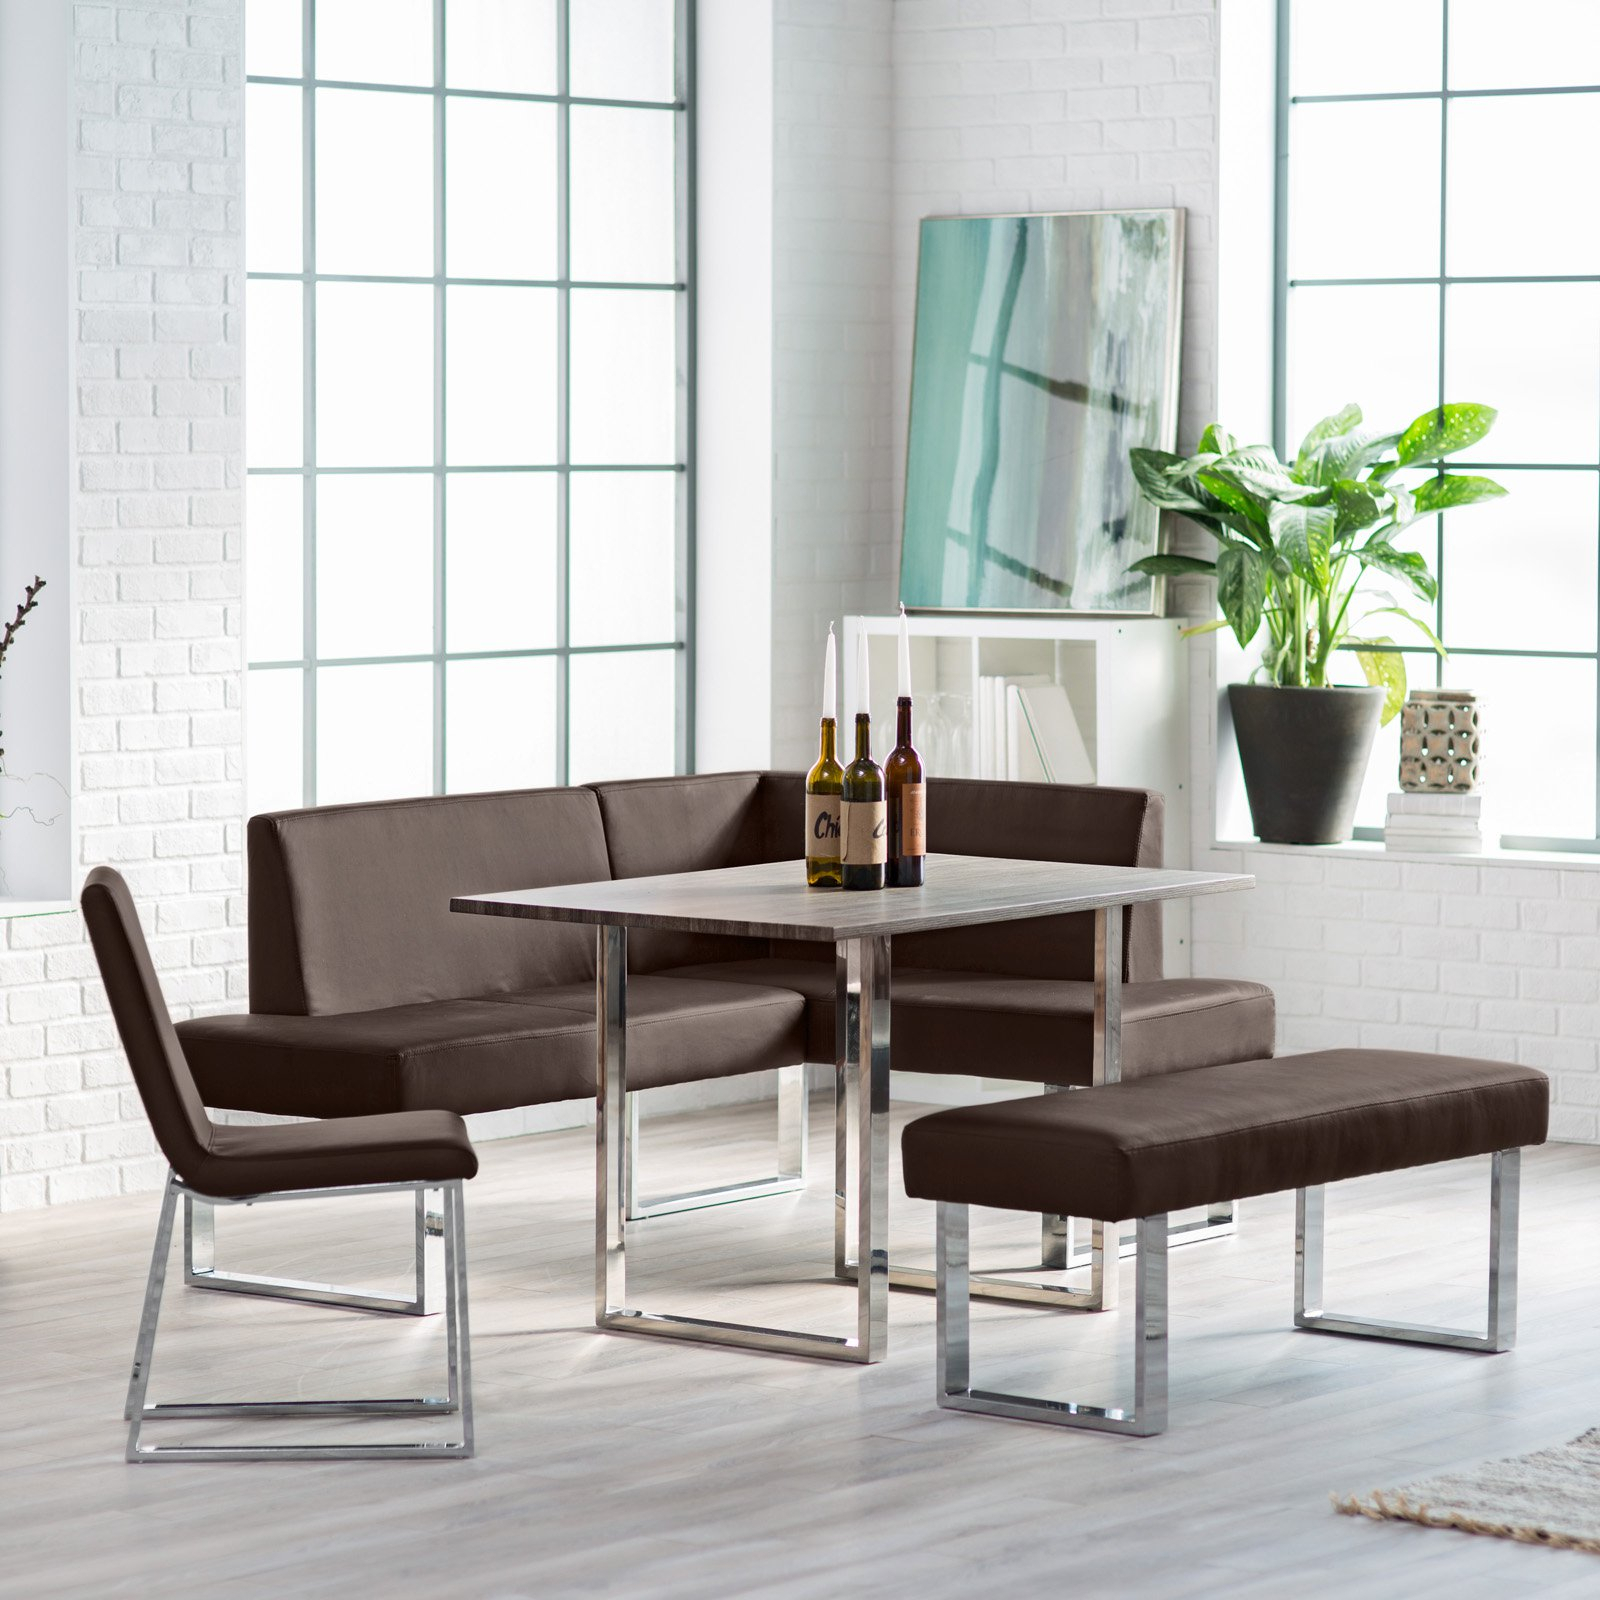 Breakfast Nook Kitchen Table Sets – Home Decor Photos Gallery Throughout Most Recent Liles 5 Piece Breakfast Nook Dining Sets (Image 3 of 20)